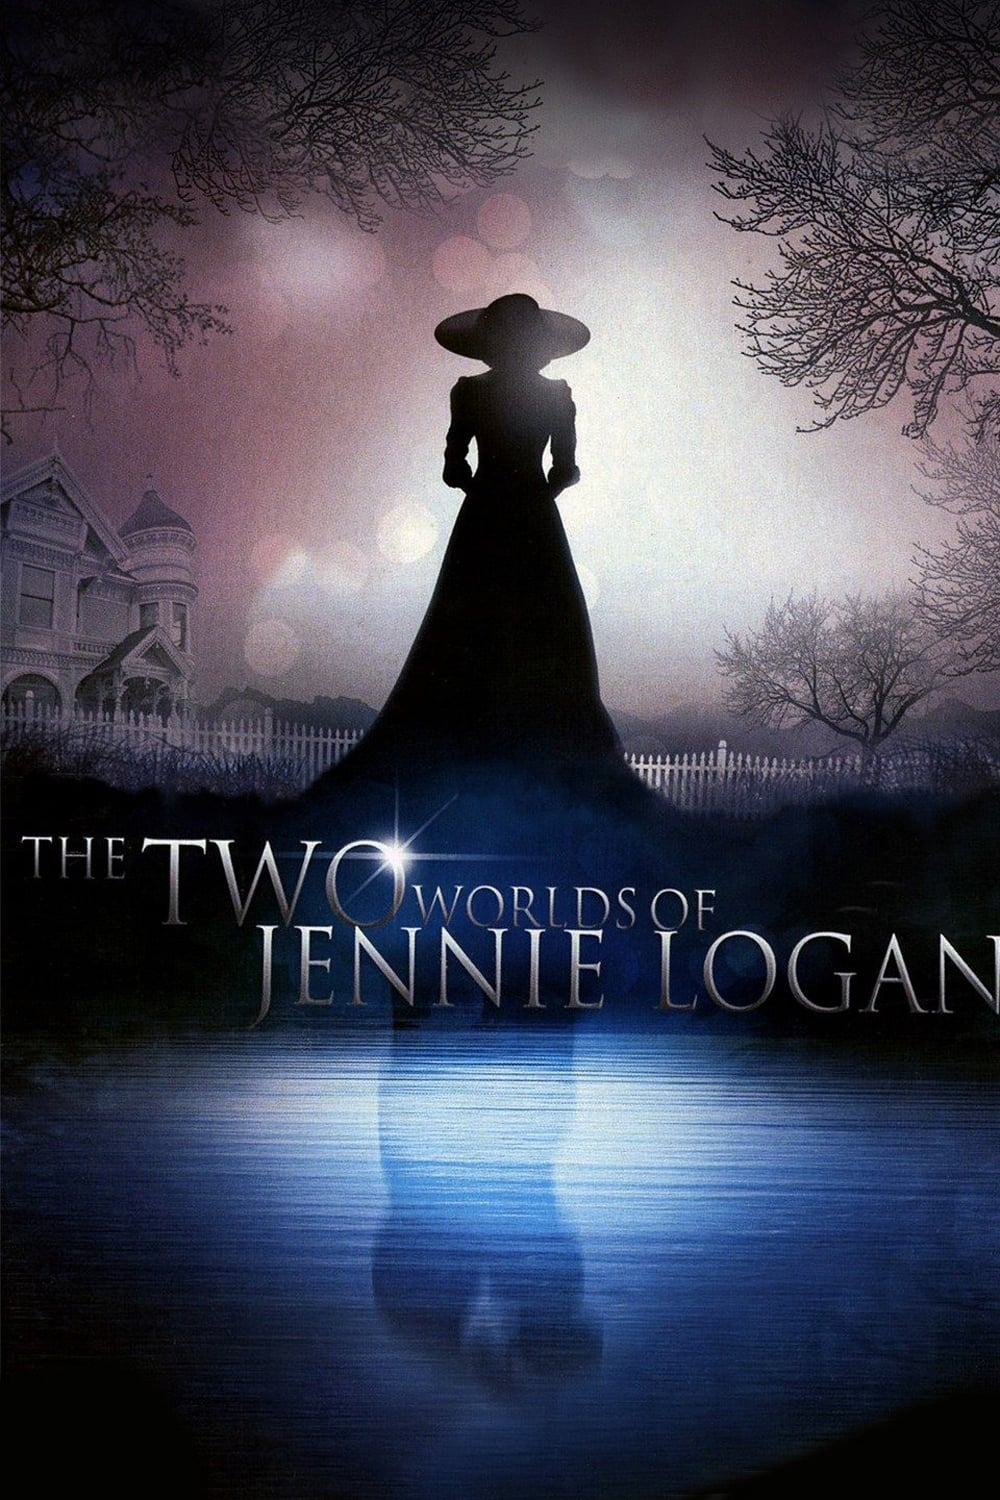 The Two Worlds of Jennie Logan (1979)